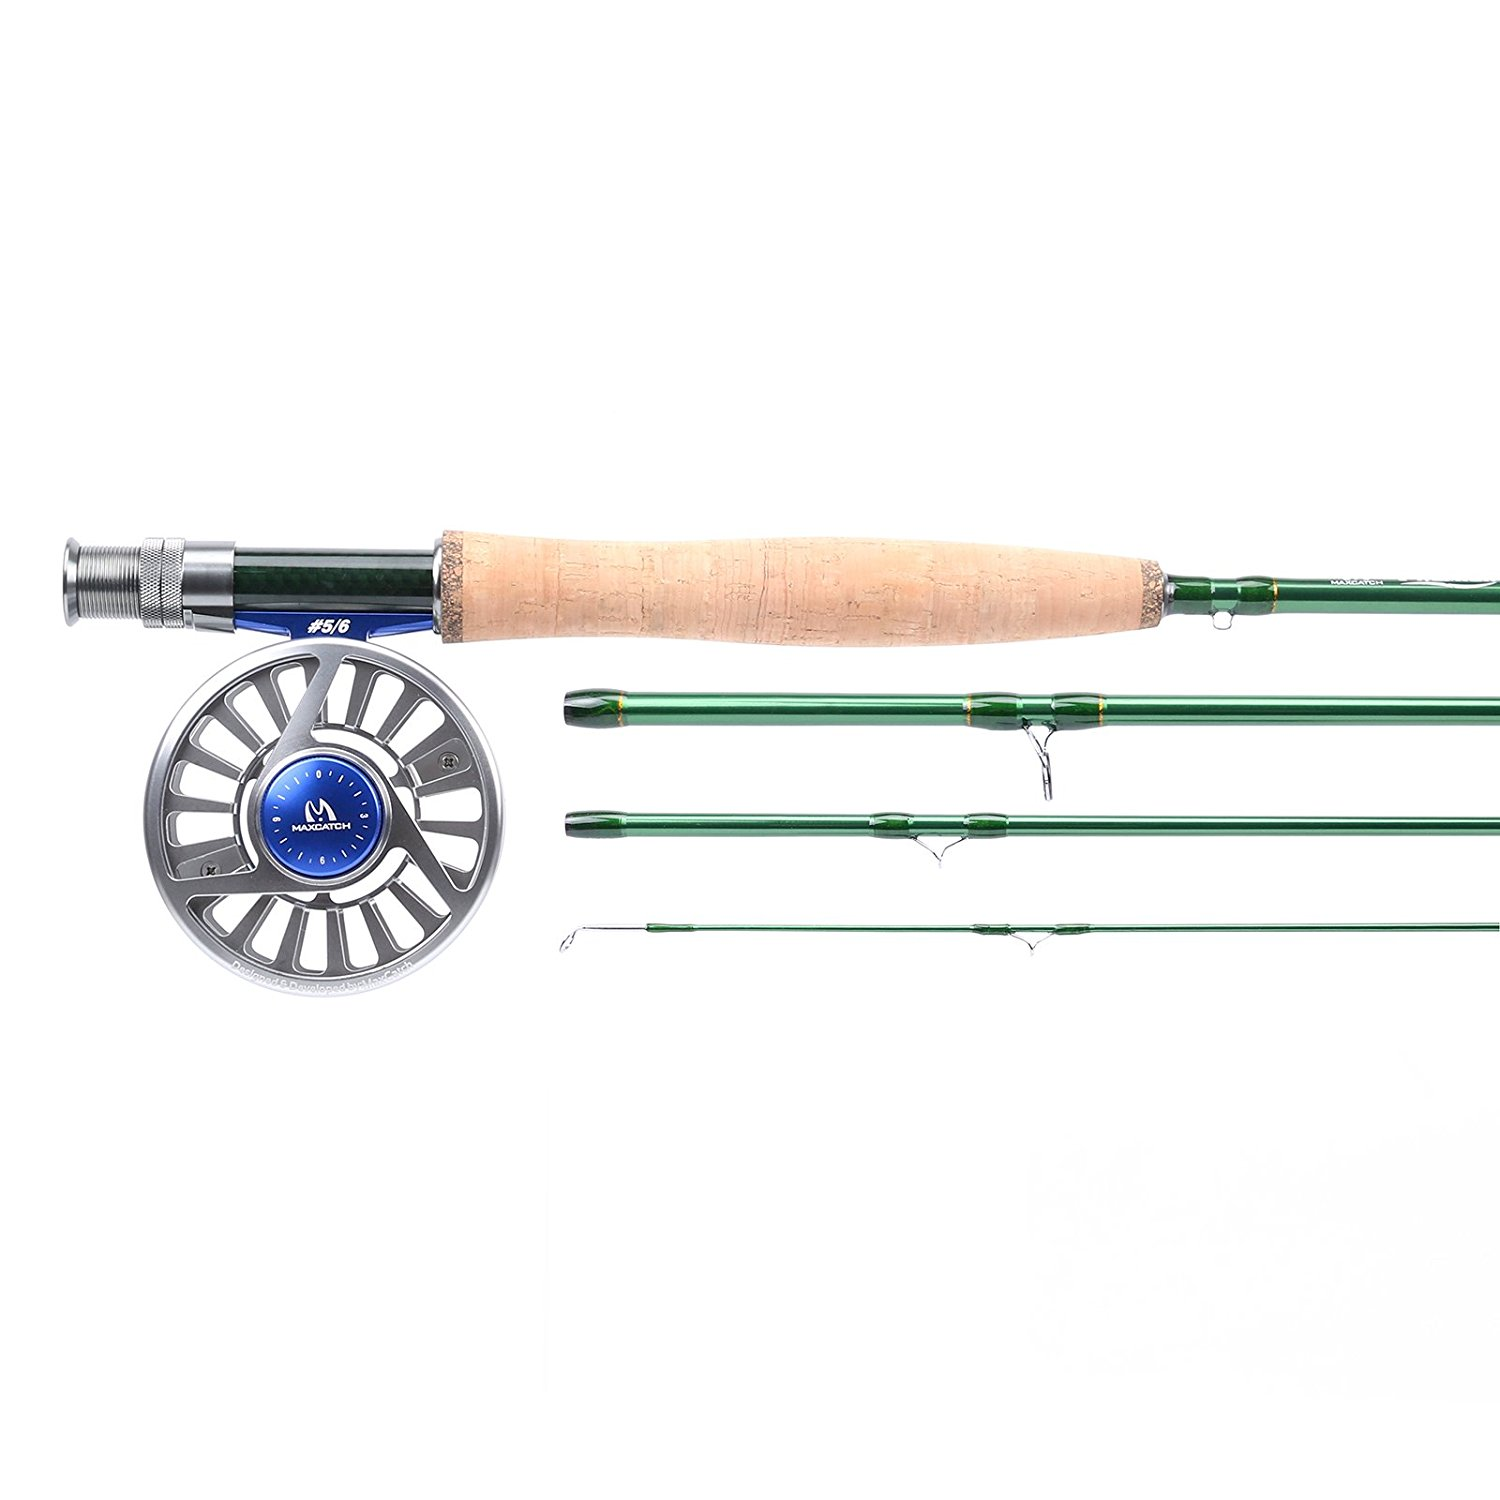 Fly fishing rod and reel for Trout fishing rod and reel